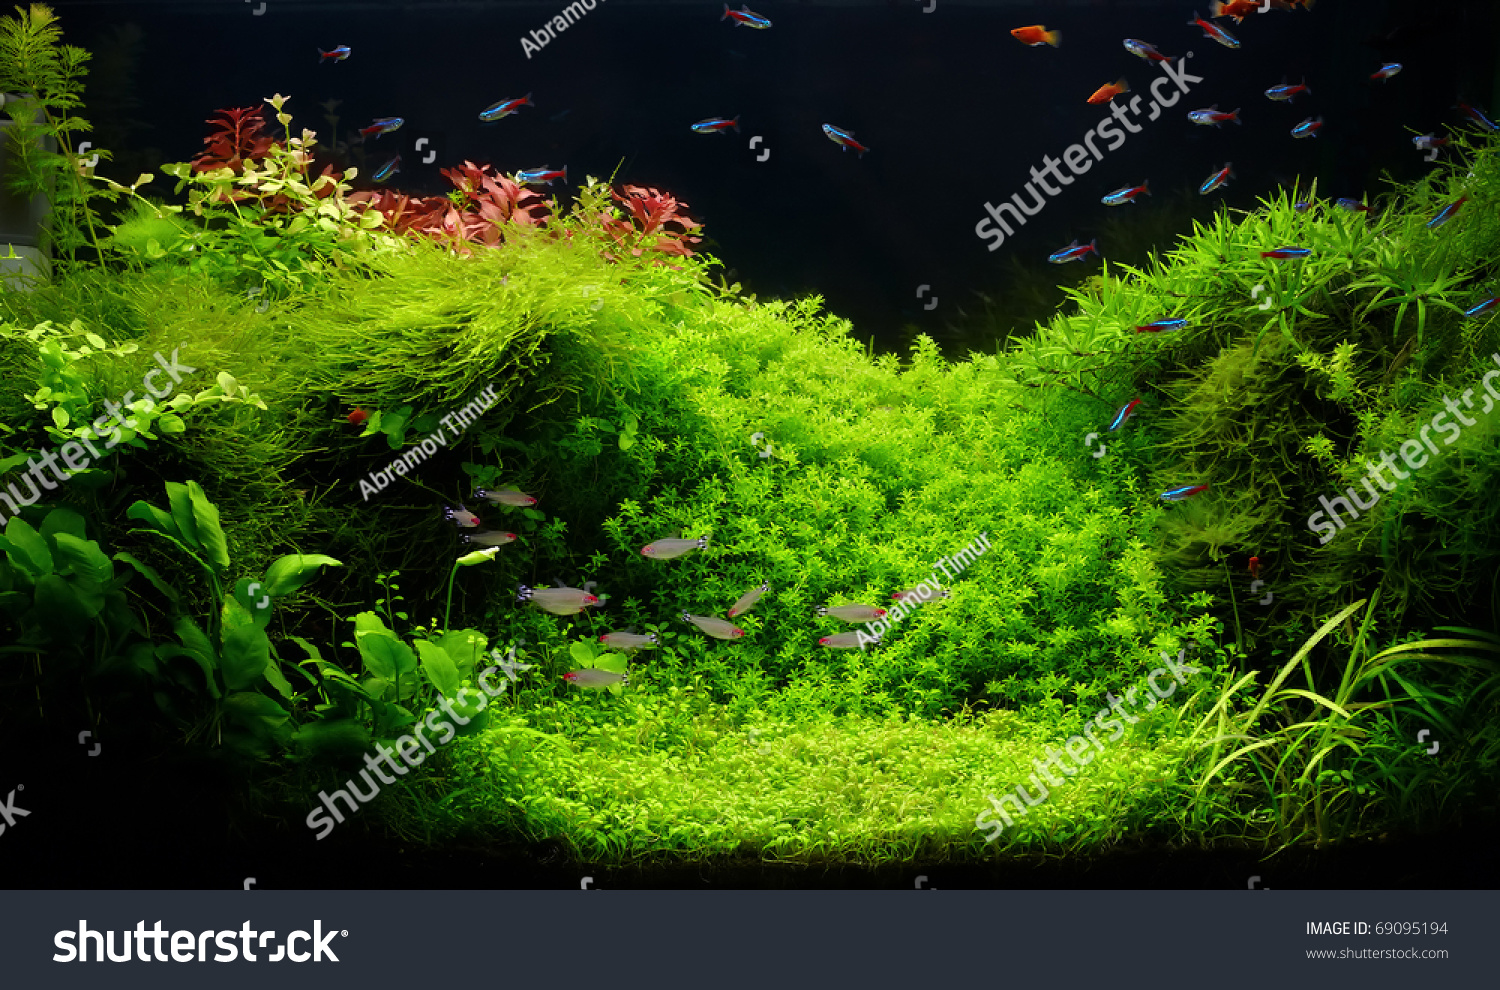 Freshwater aquarium fish neon - A Beautiful Planted Tropical Freshwater Aquarium With Bright Blue Neons And Rummy Nosed Tetra Fishes